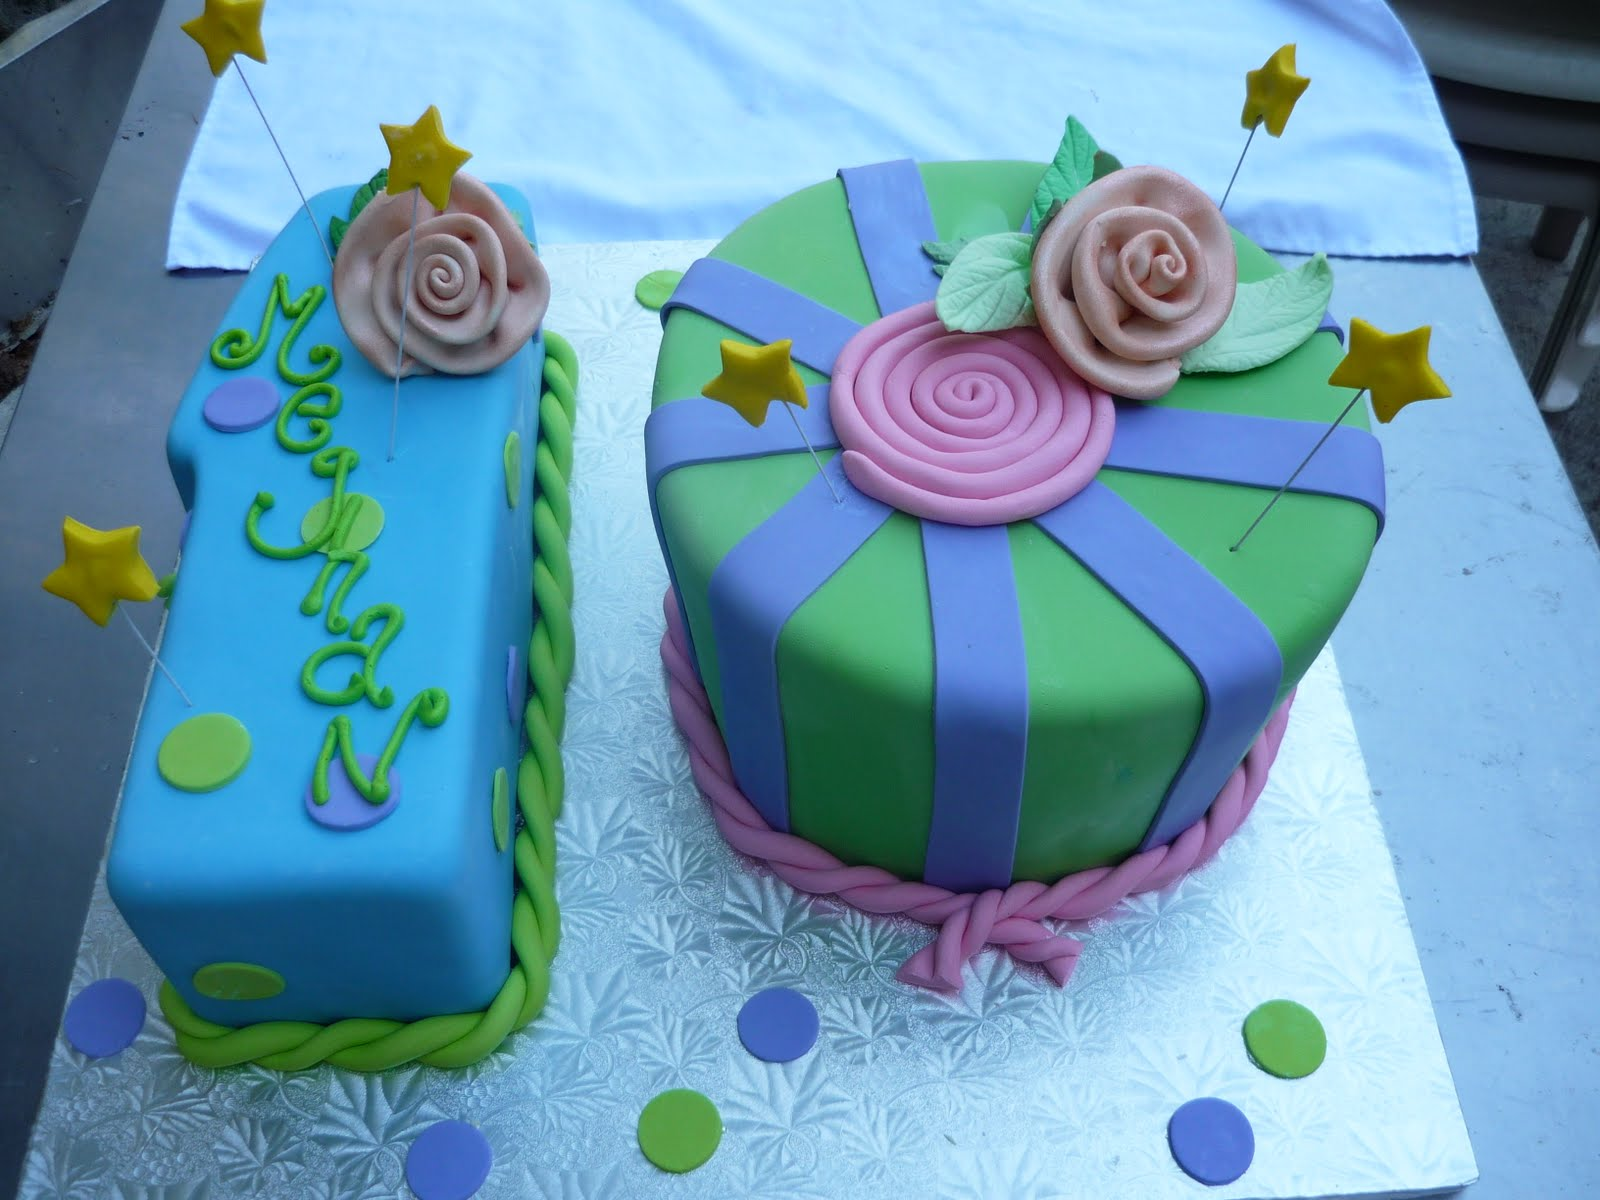 color combinations for birthday cakes ; 10+ten+cake+sculpted+number+cake+tenth+birthday+cake+girls+birthday+fondant+with+fondant+ribbon+roses+and+stars+on+wires+bright+colored+birthday+cake